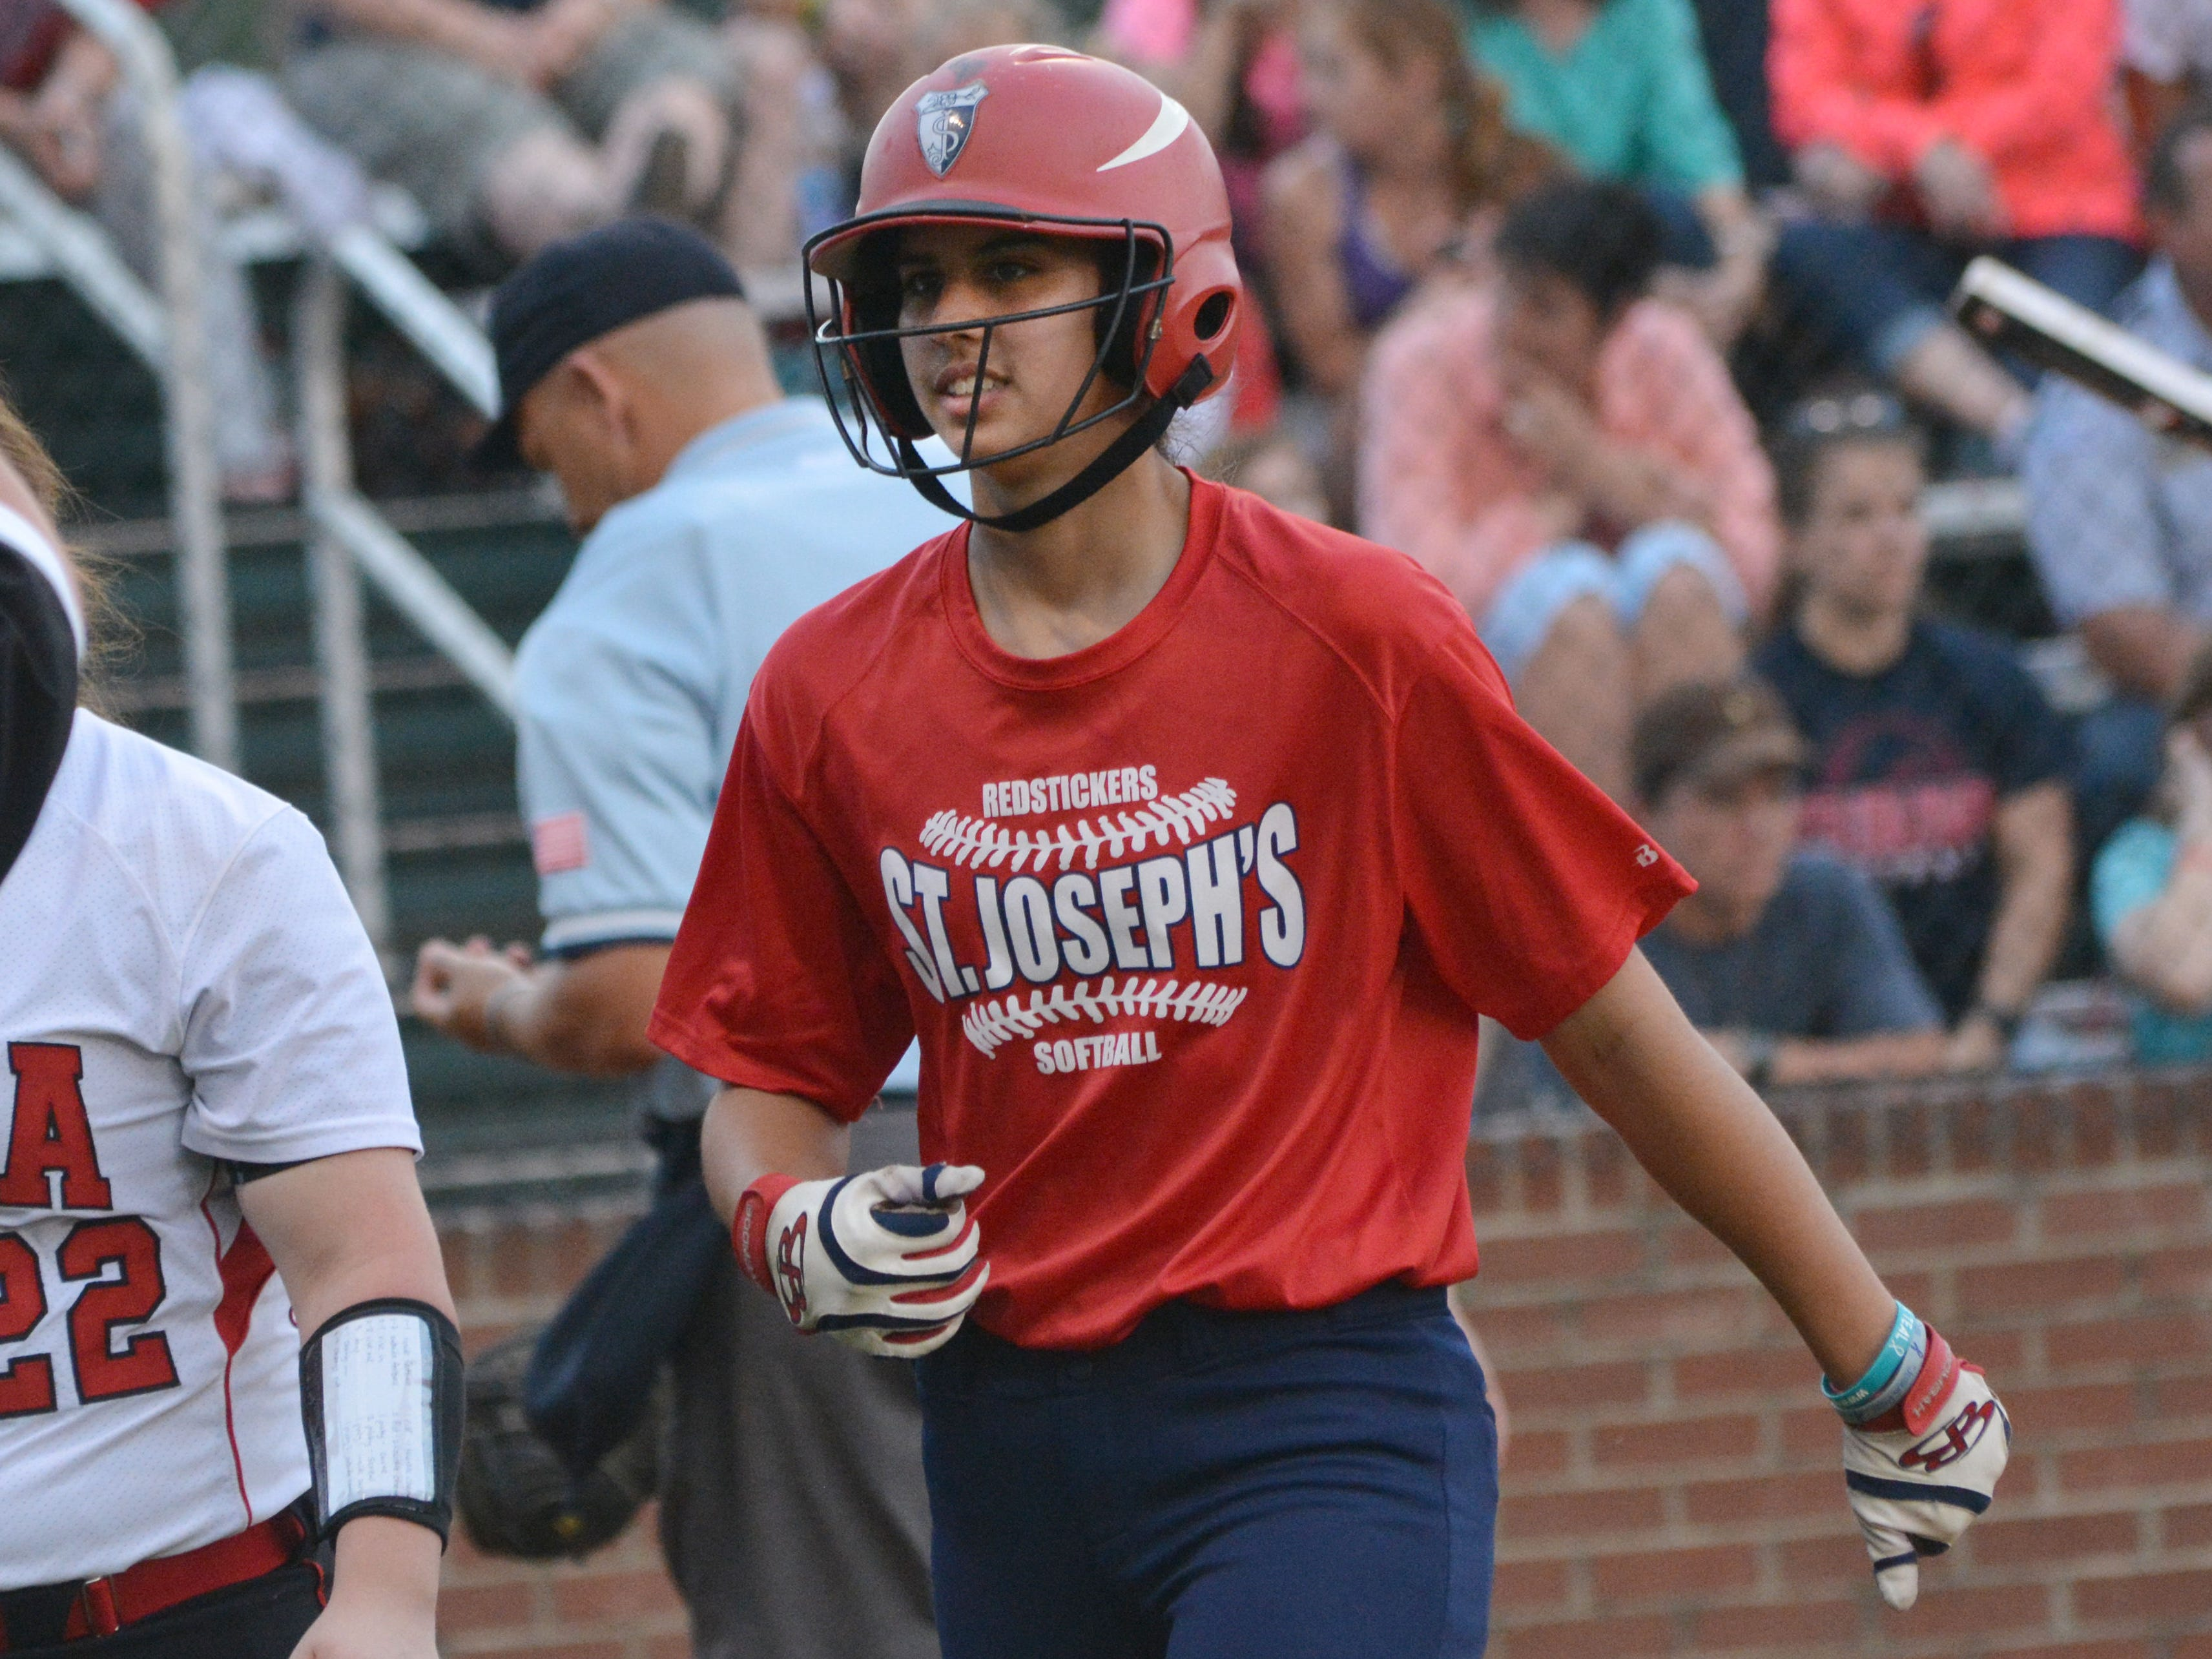 Elyse Thornhill of St. Joseph's Academy in Baton Rouge scored a homerun in the LHSAA Softball All Stars game played at the softball field at Louisiana College.